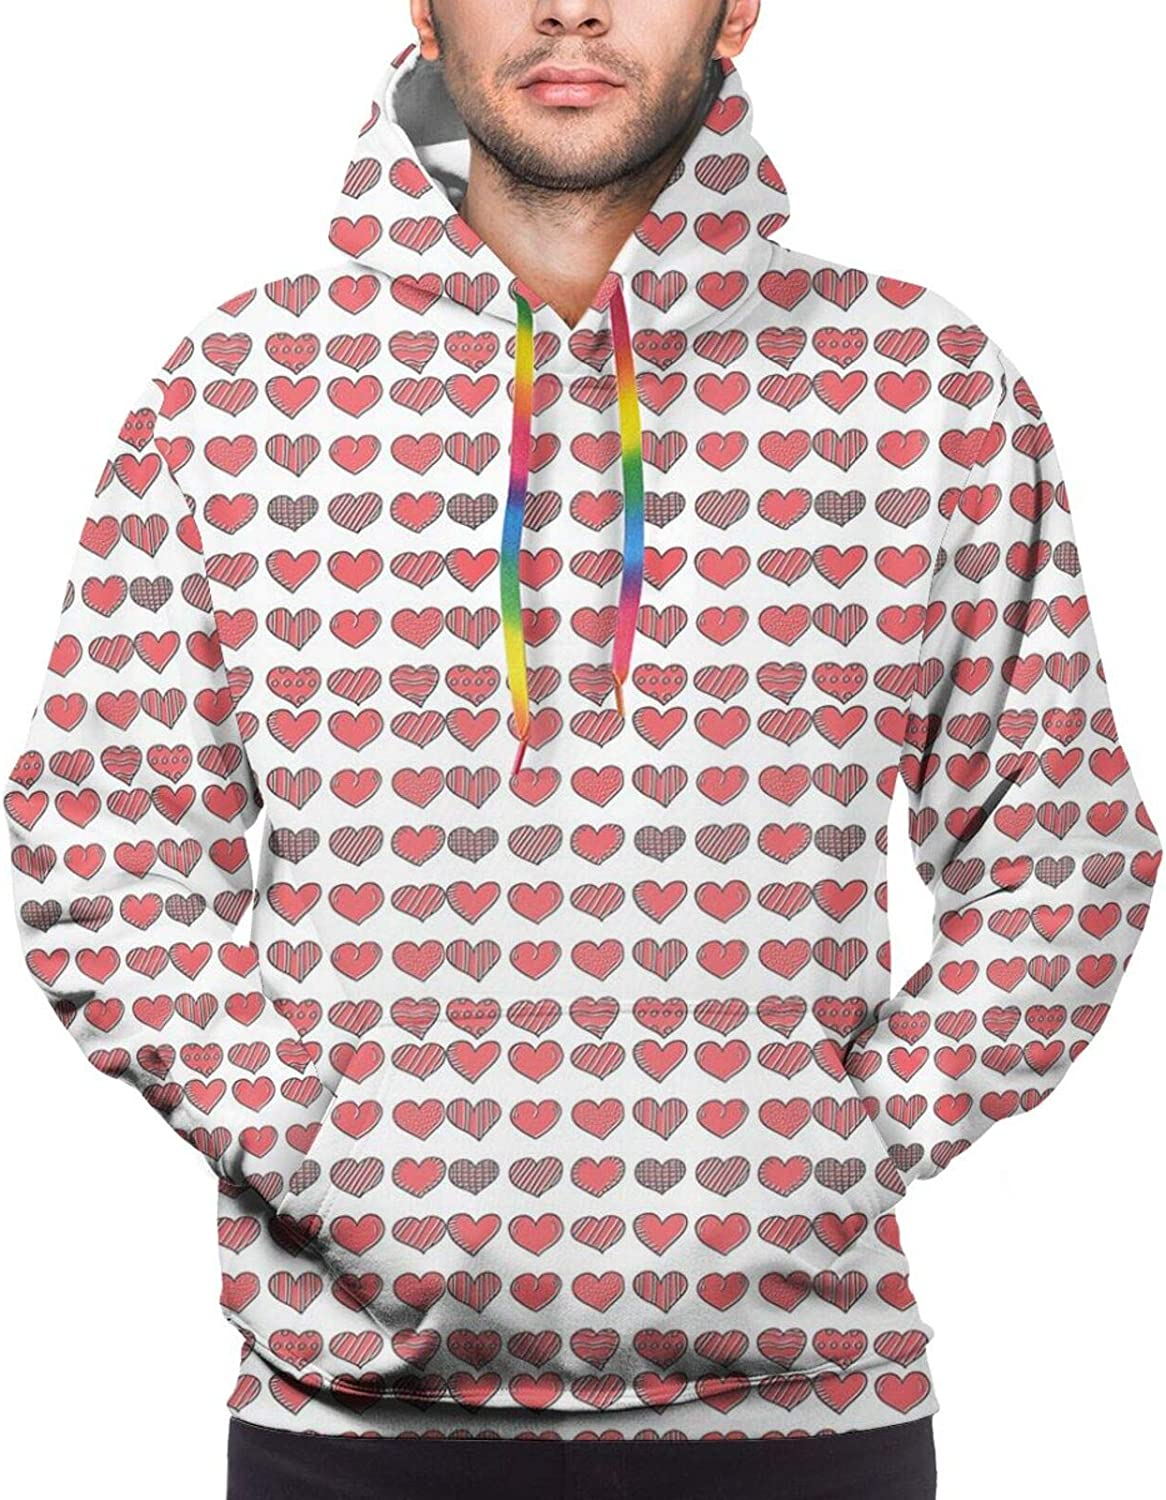 Men's Hoodies Sweatshirts,Happy Valentine Day Quote Love Romance Theme Abstract Image with Heart